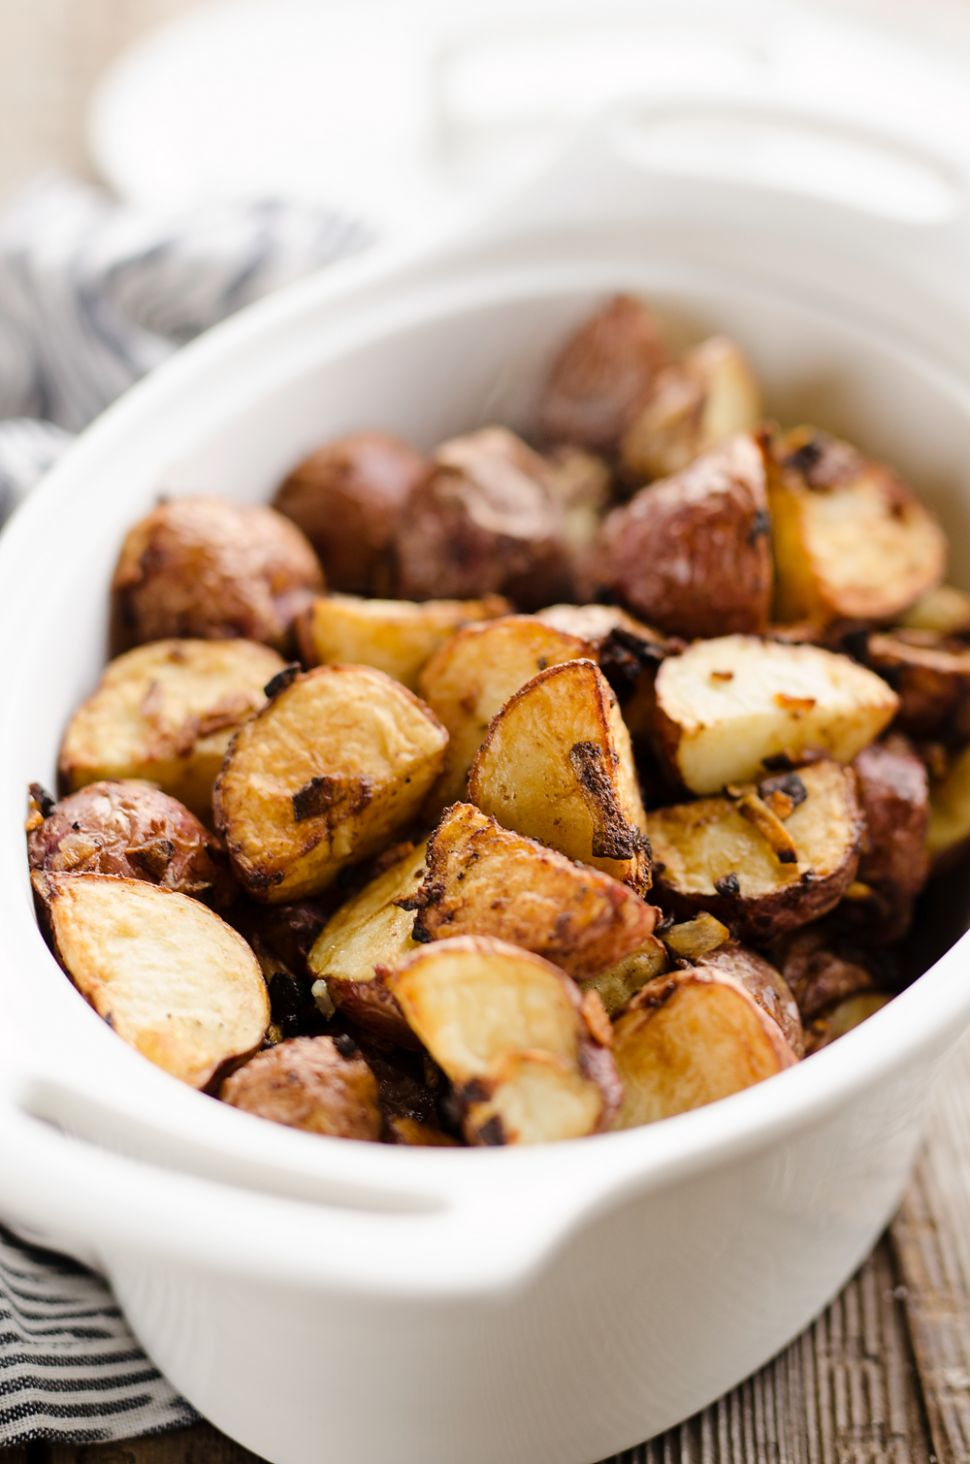 Airfryer Crispy Roasted Onion Potatoes - Potato Recipes Air Fryer